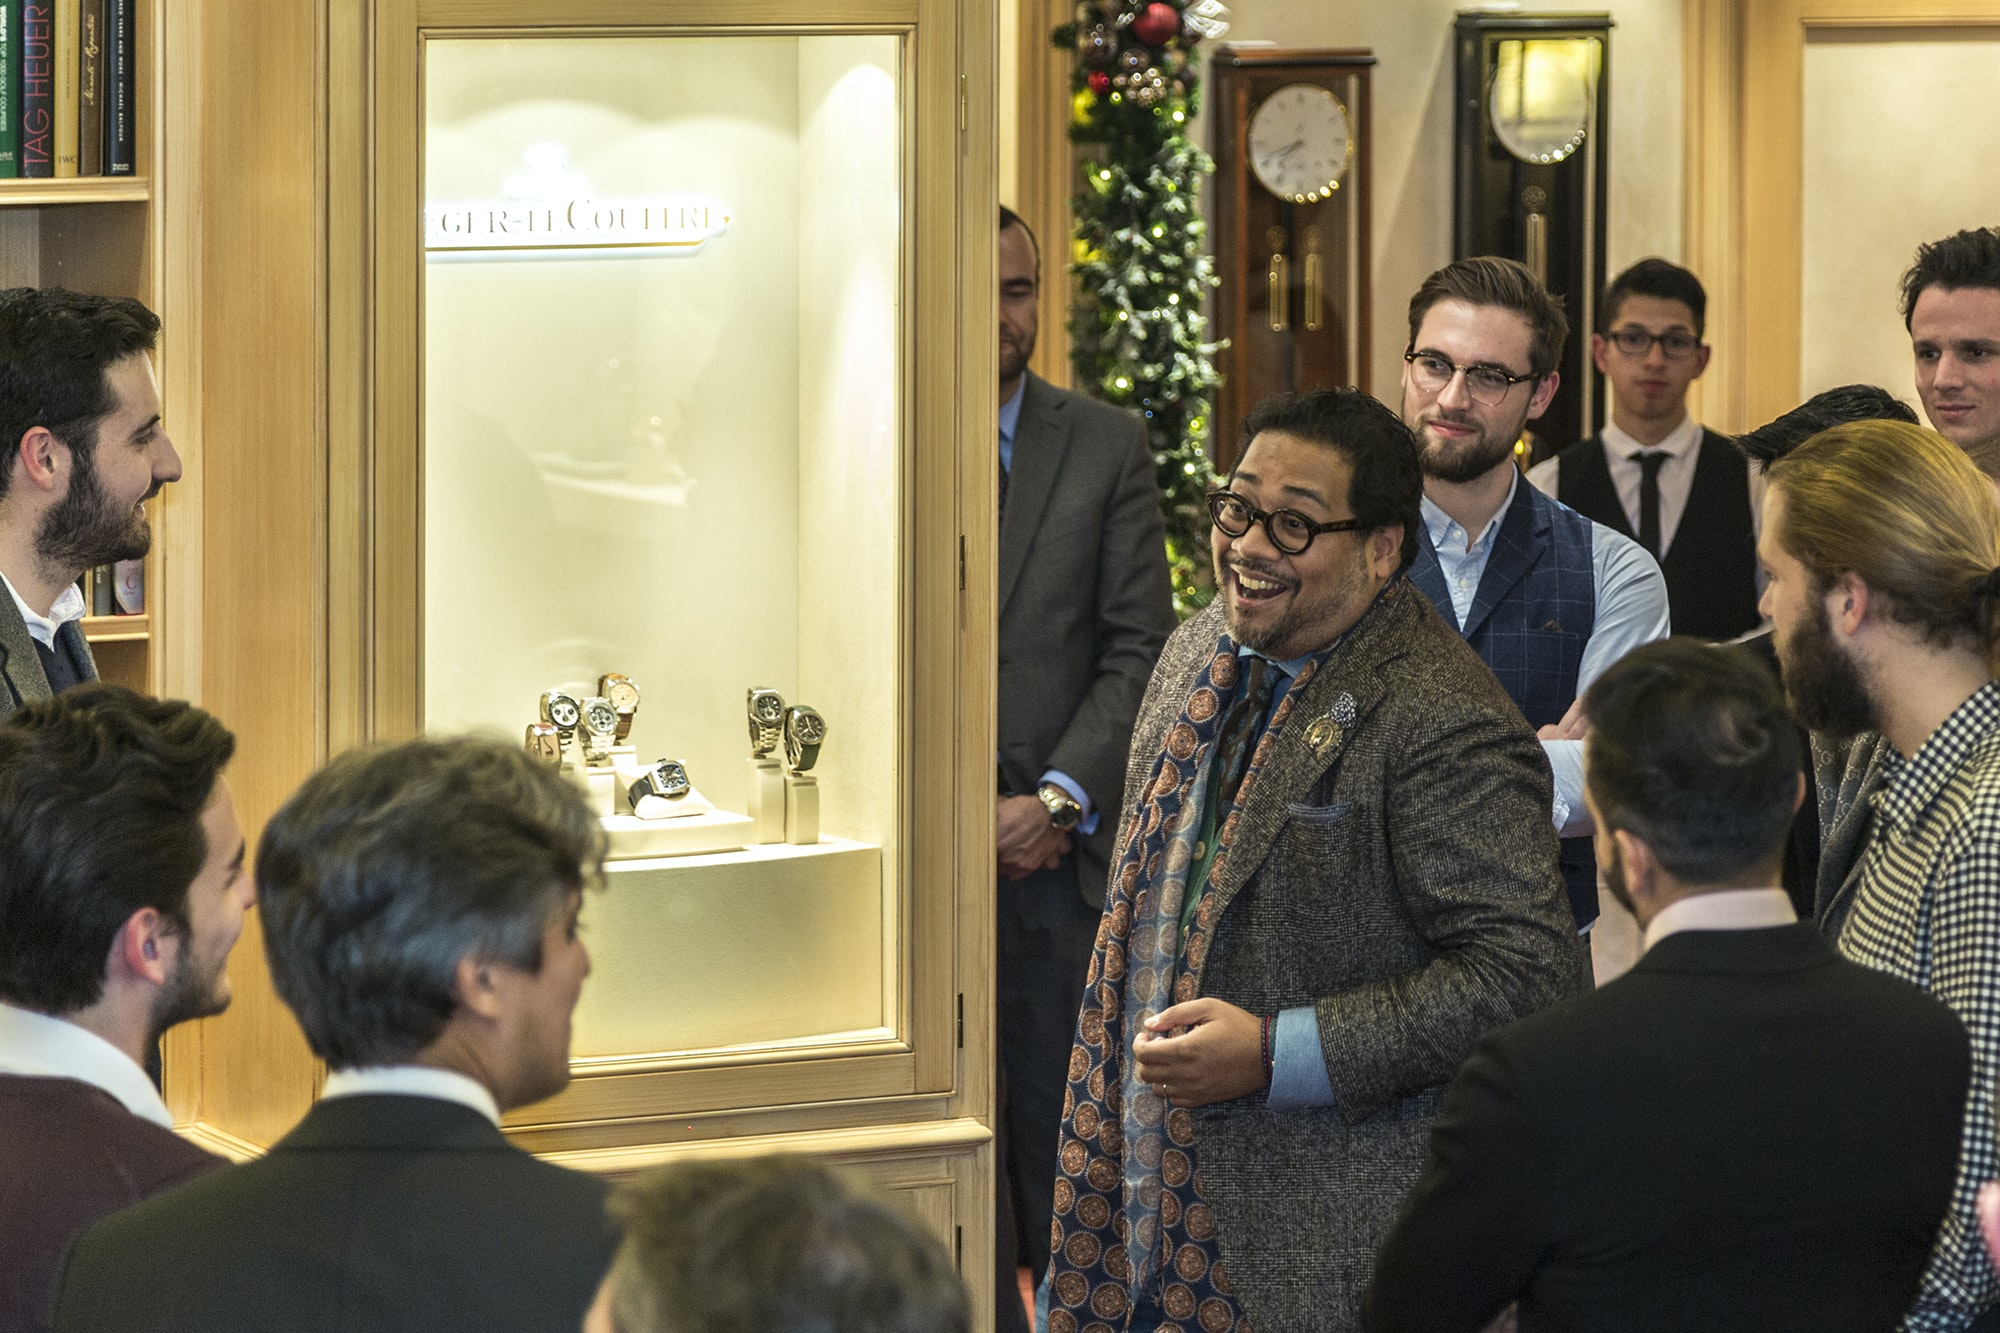 Photo Report: HODINKEE Hosts A Collector Get-Together At The Wempe Boutique In London Photo Report: HODINKEE Hosts A Collector Get-Together At The Wempe Boutique In London y